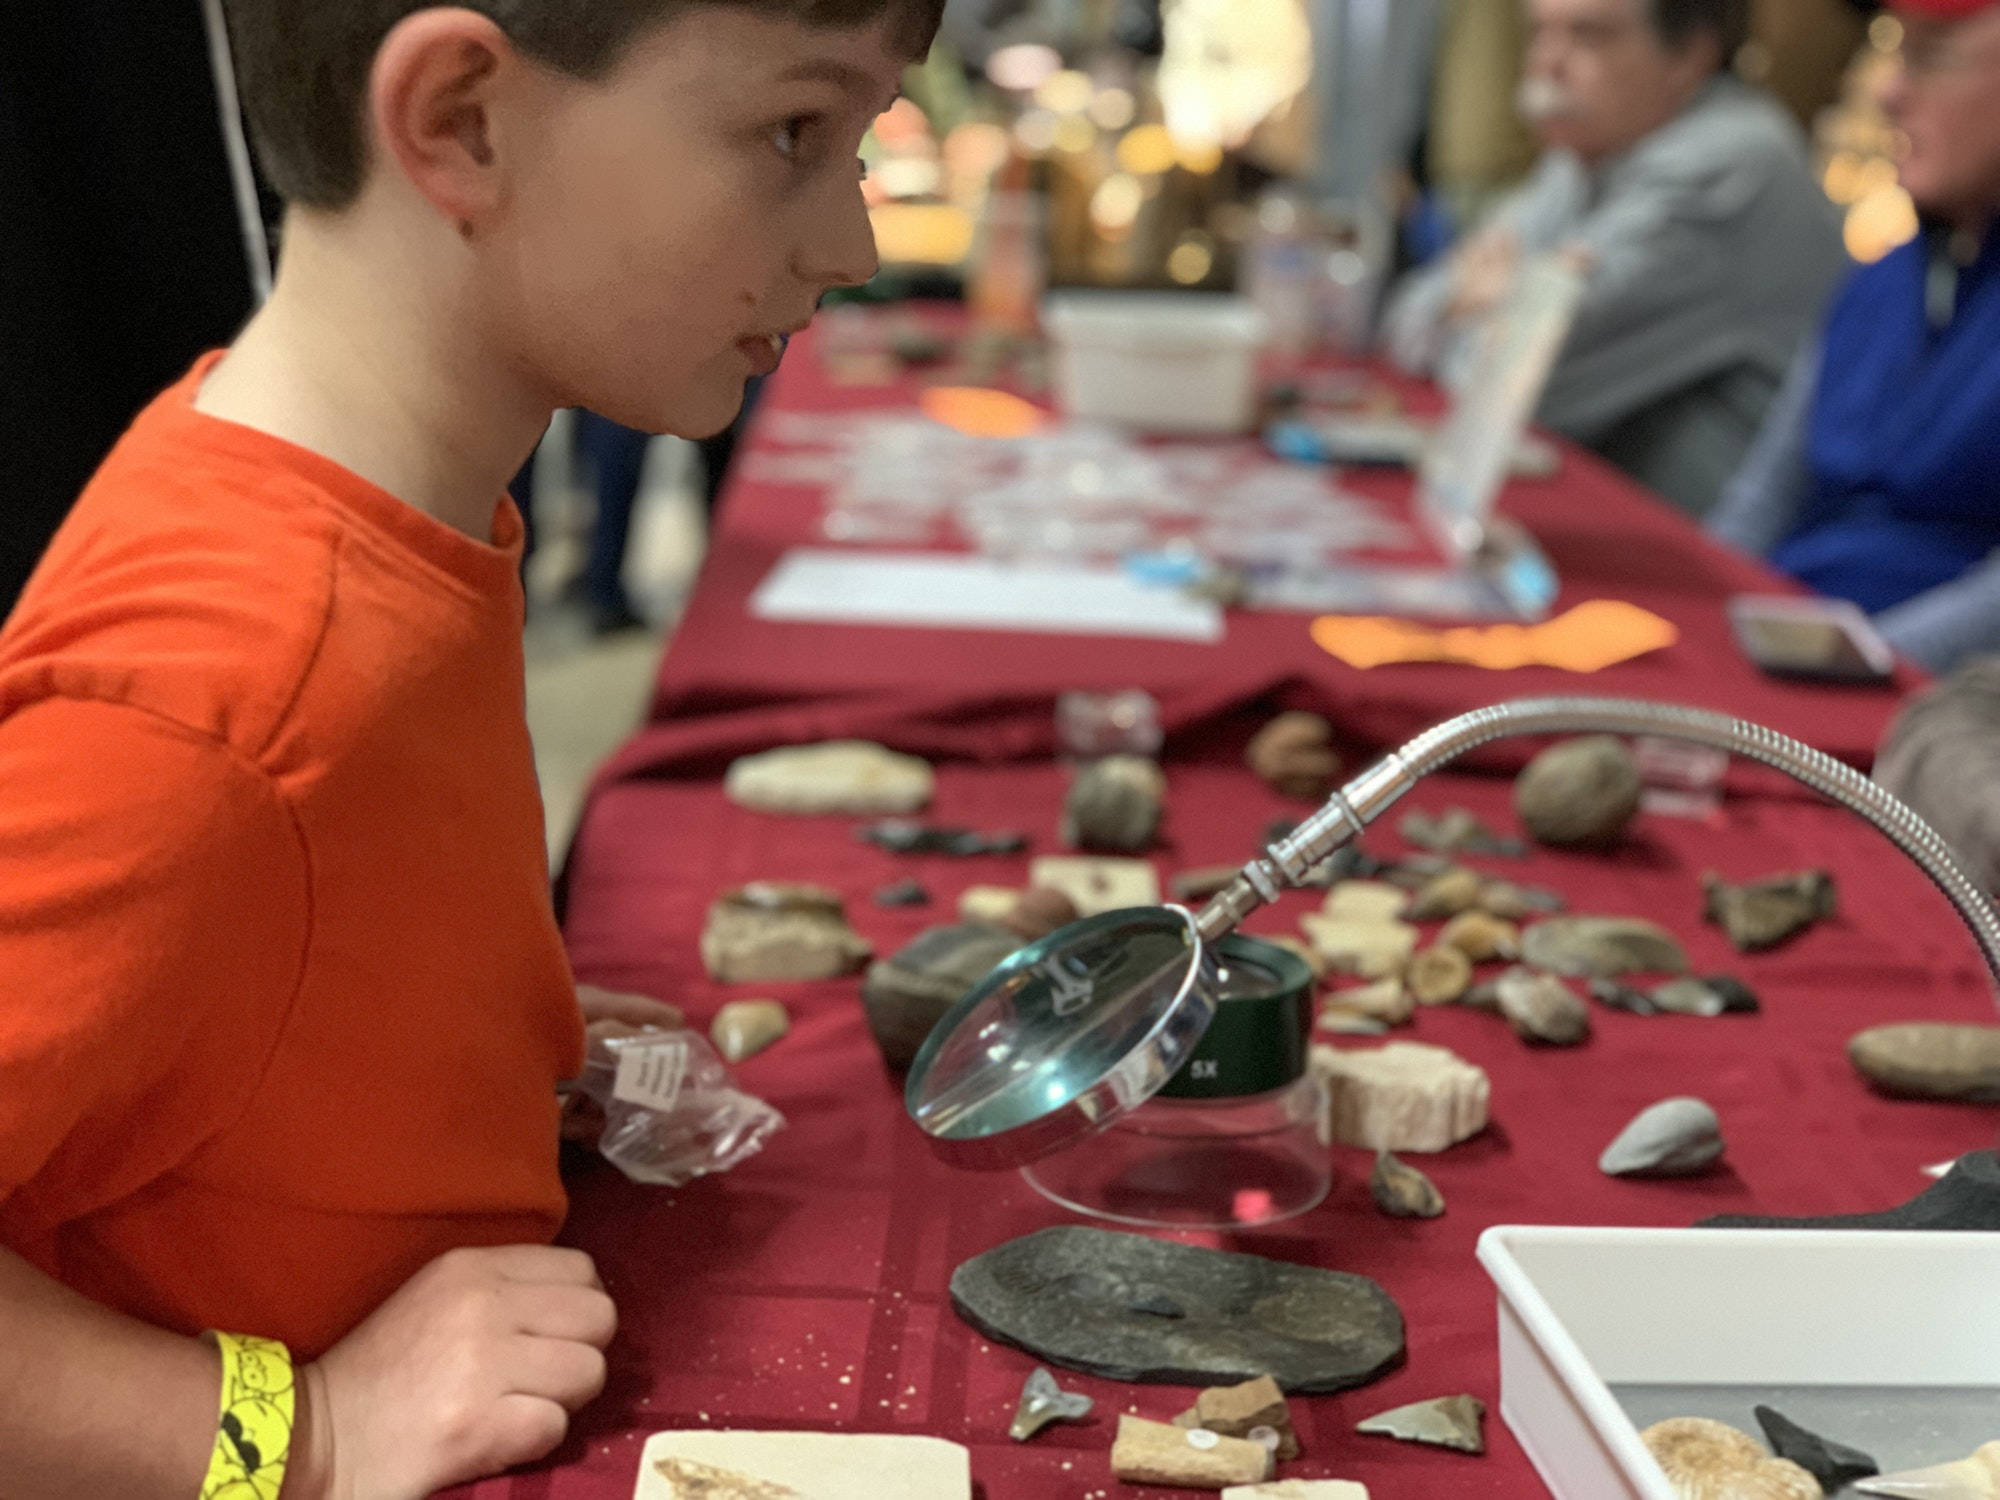 Little boy looking at fossils through a magnifying glass at a rock and gem show